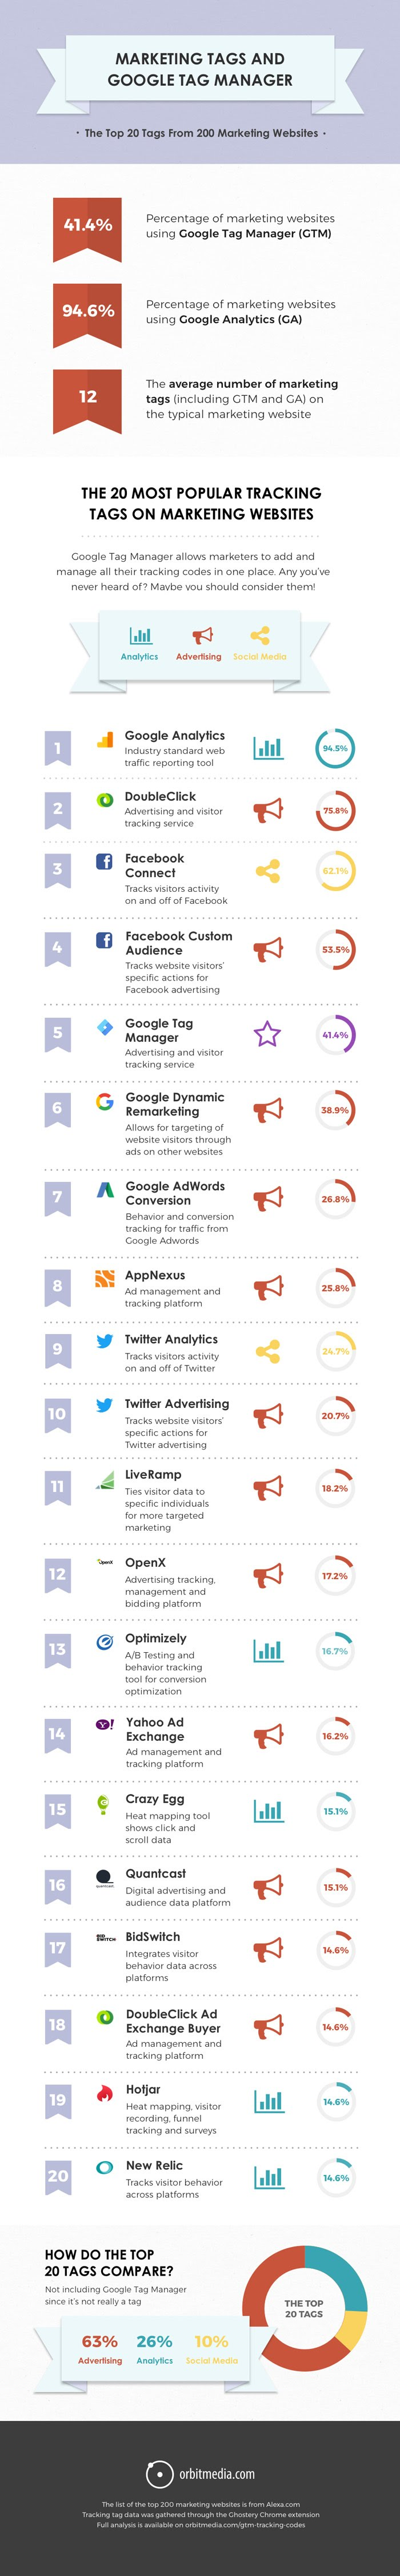 Marketing Tags and Google Tag Manager: The Top 20 Tags From The Top 200 Marketing Sites - #infographic